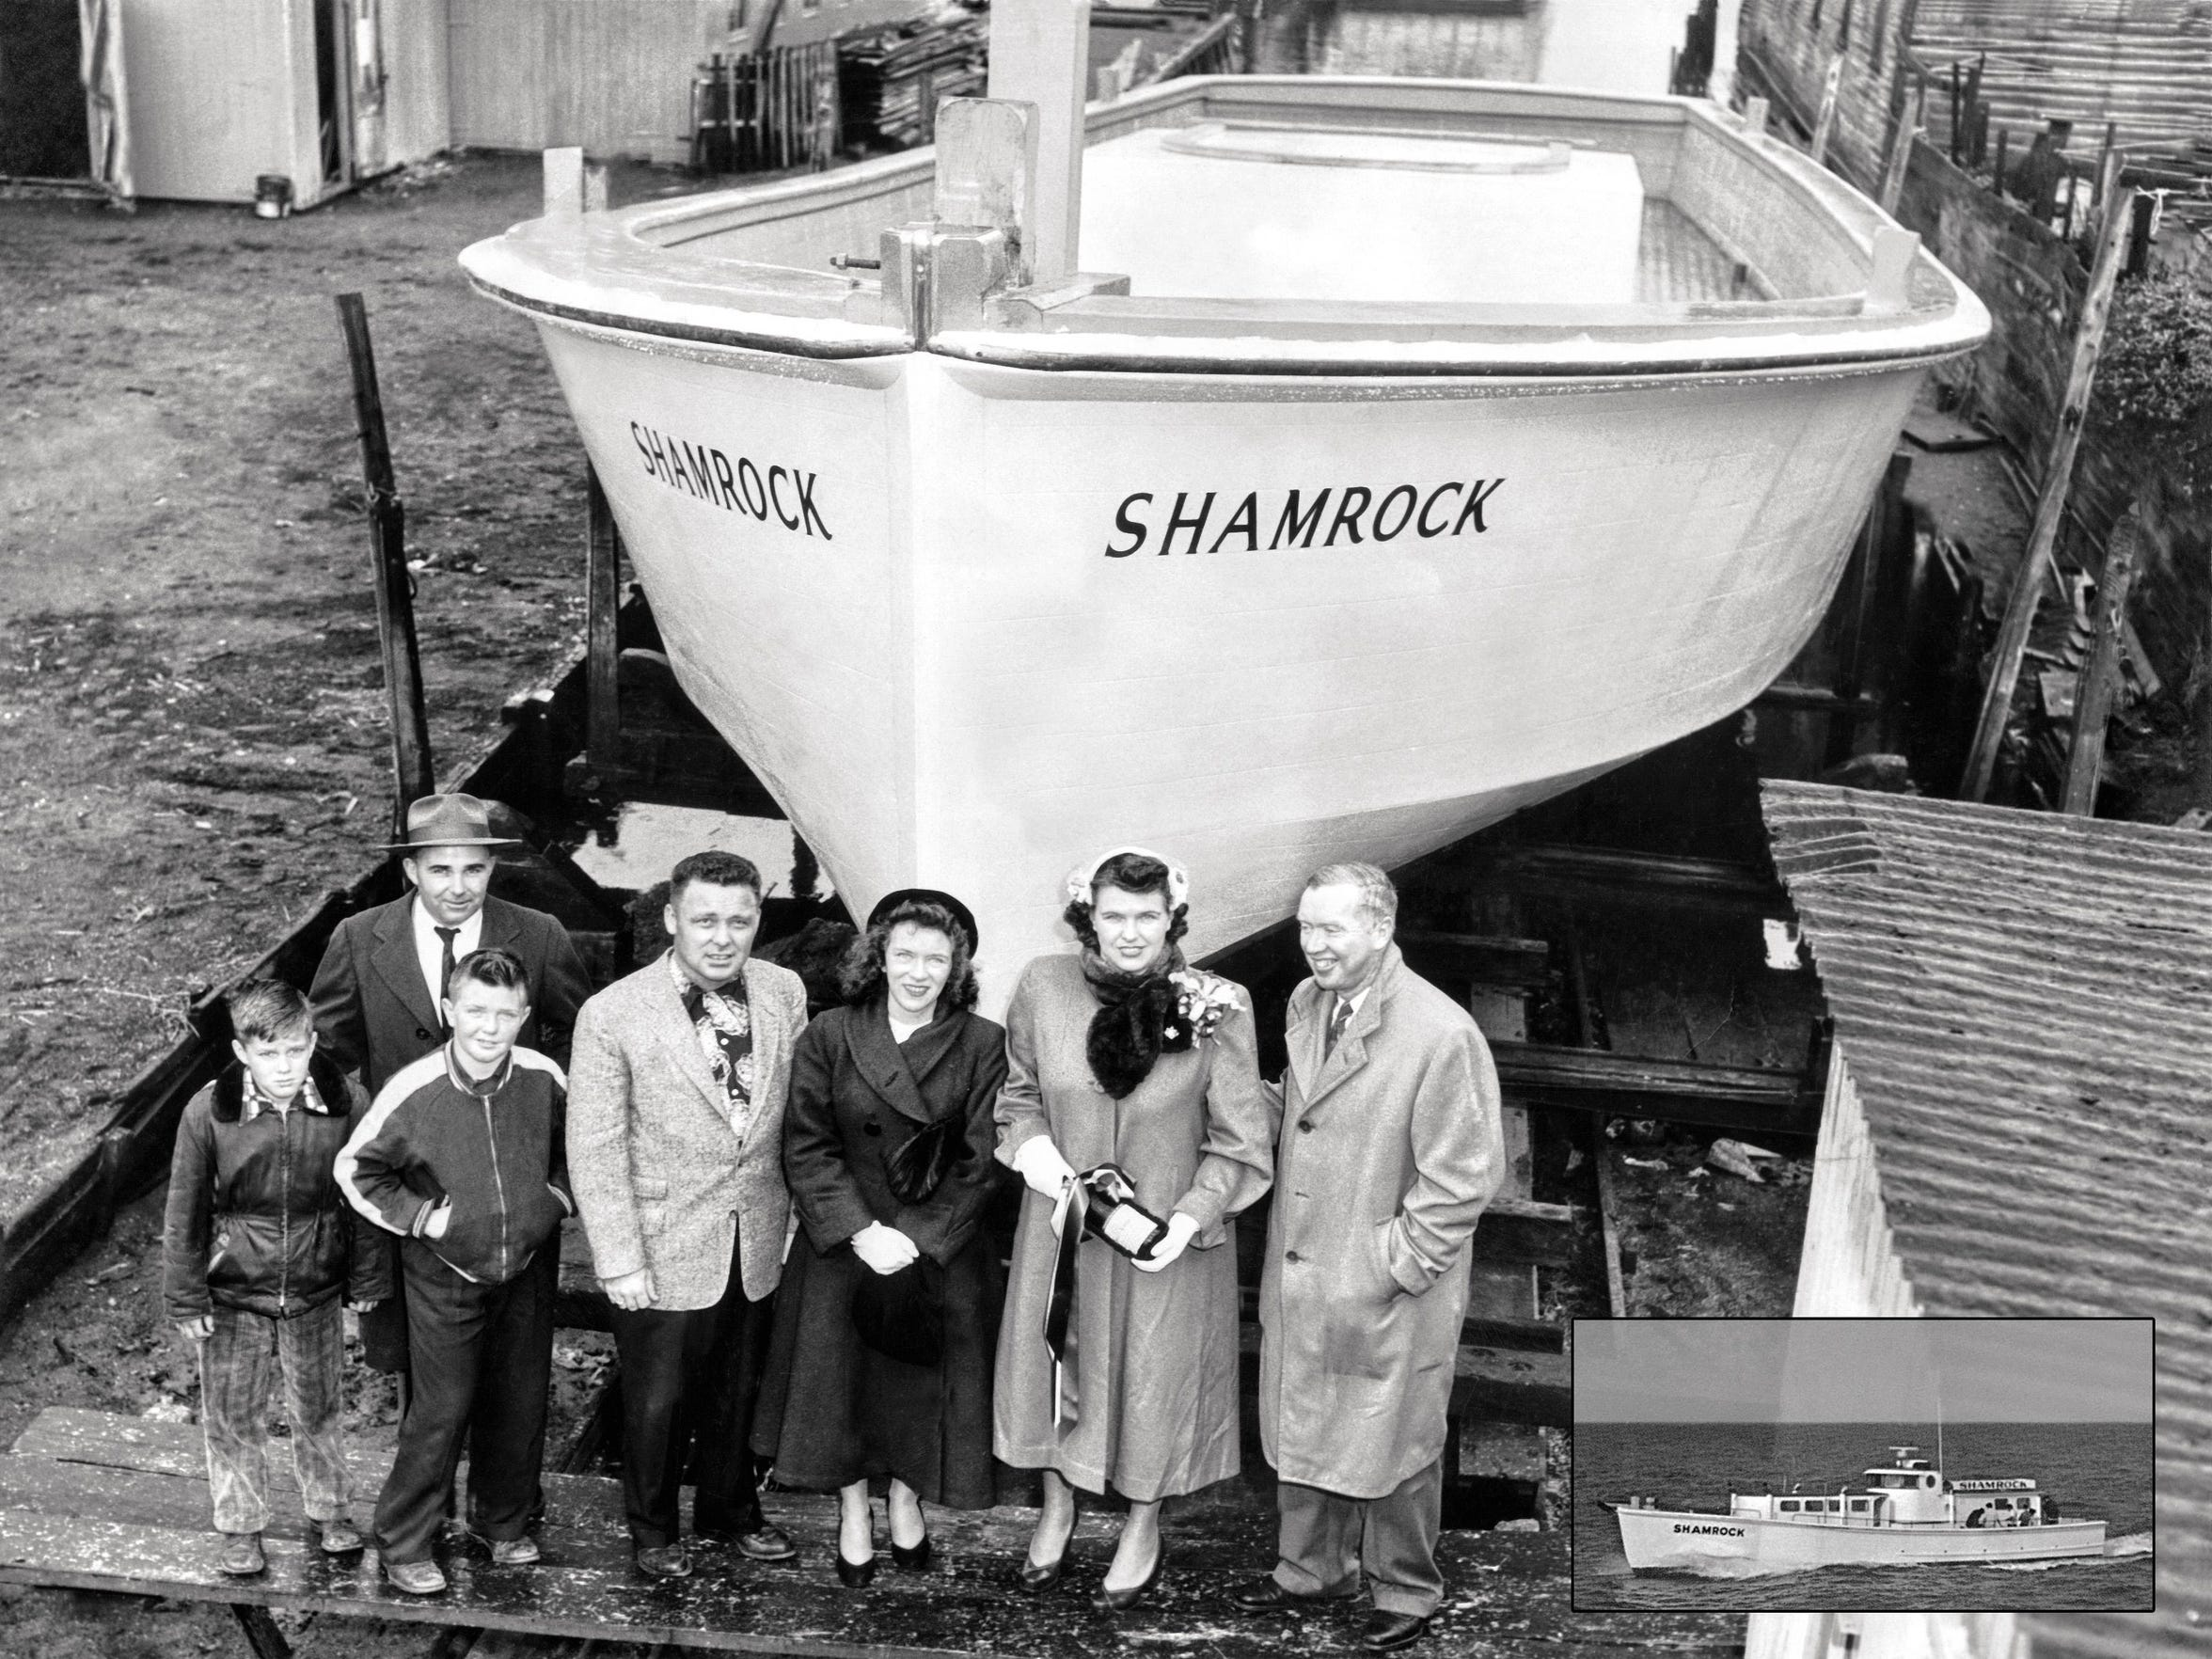 948 - SHAMROCK Hull Launch 1953 (Edited Collage)